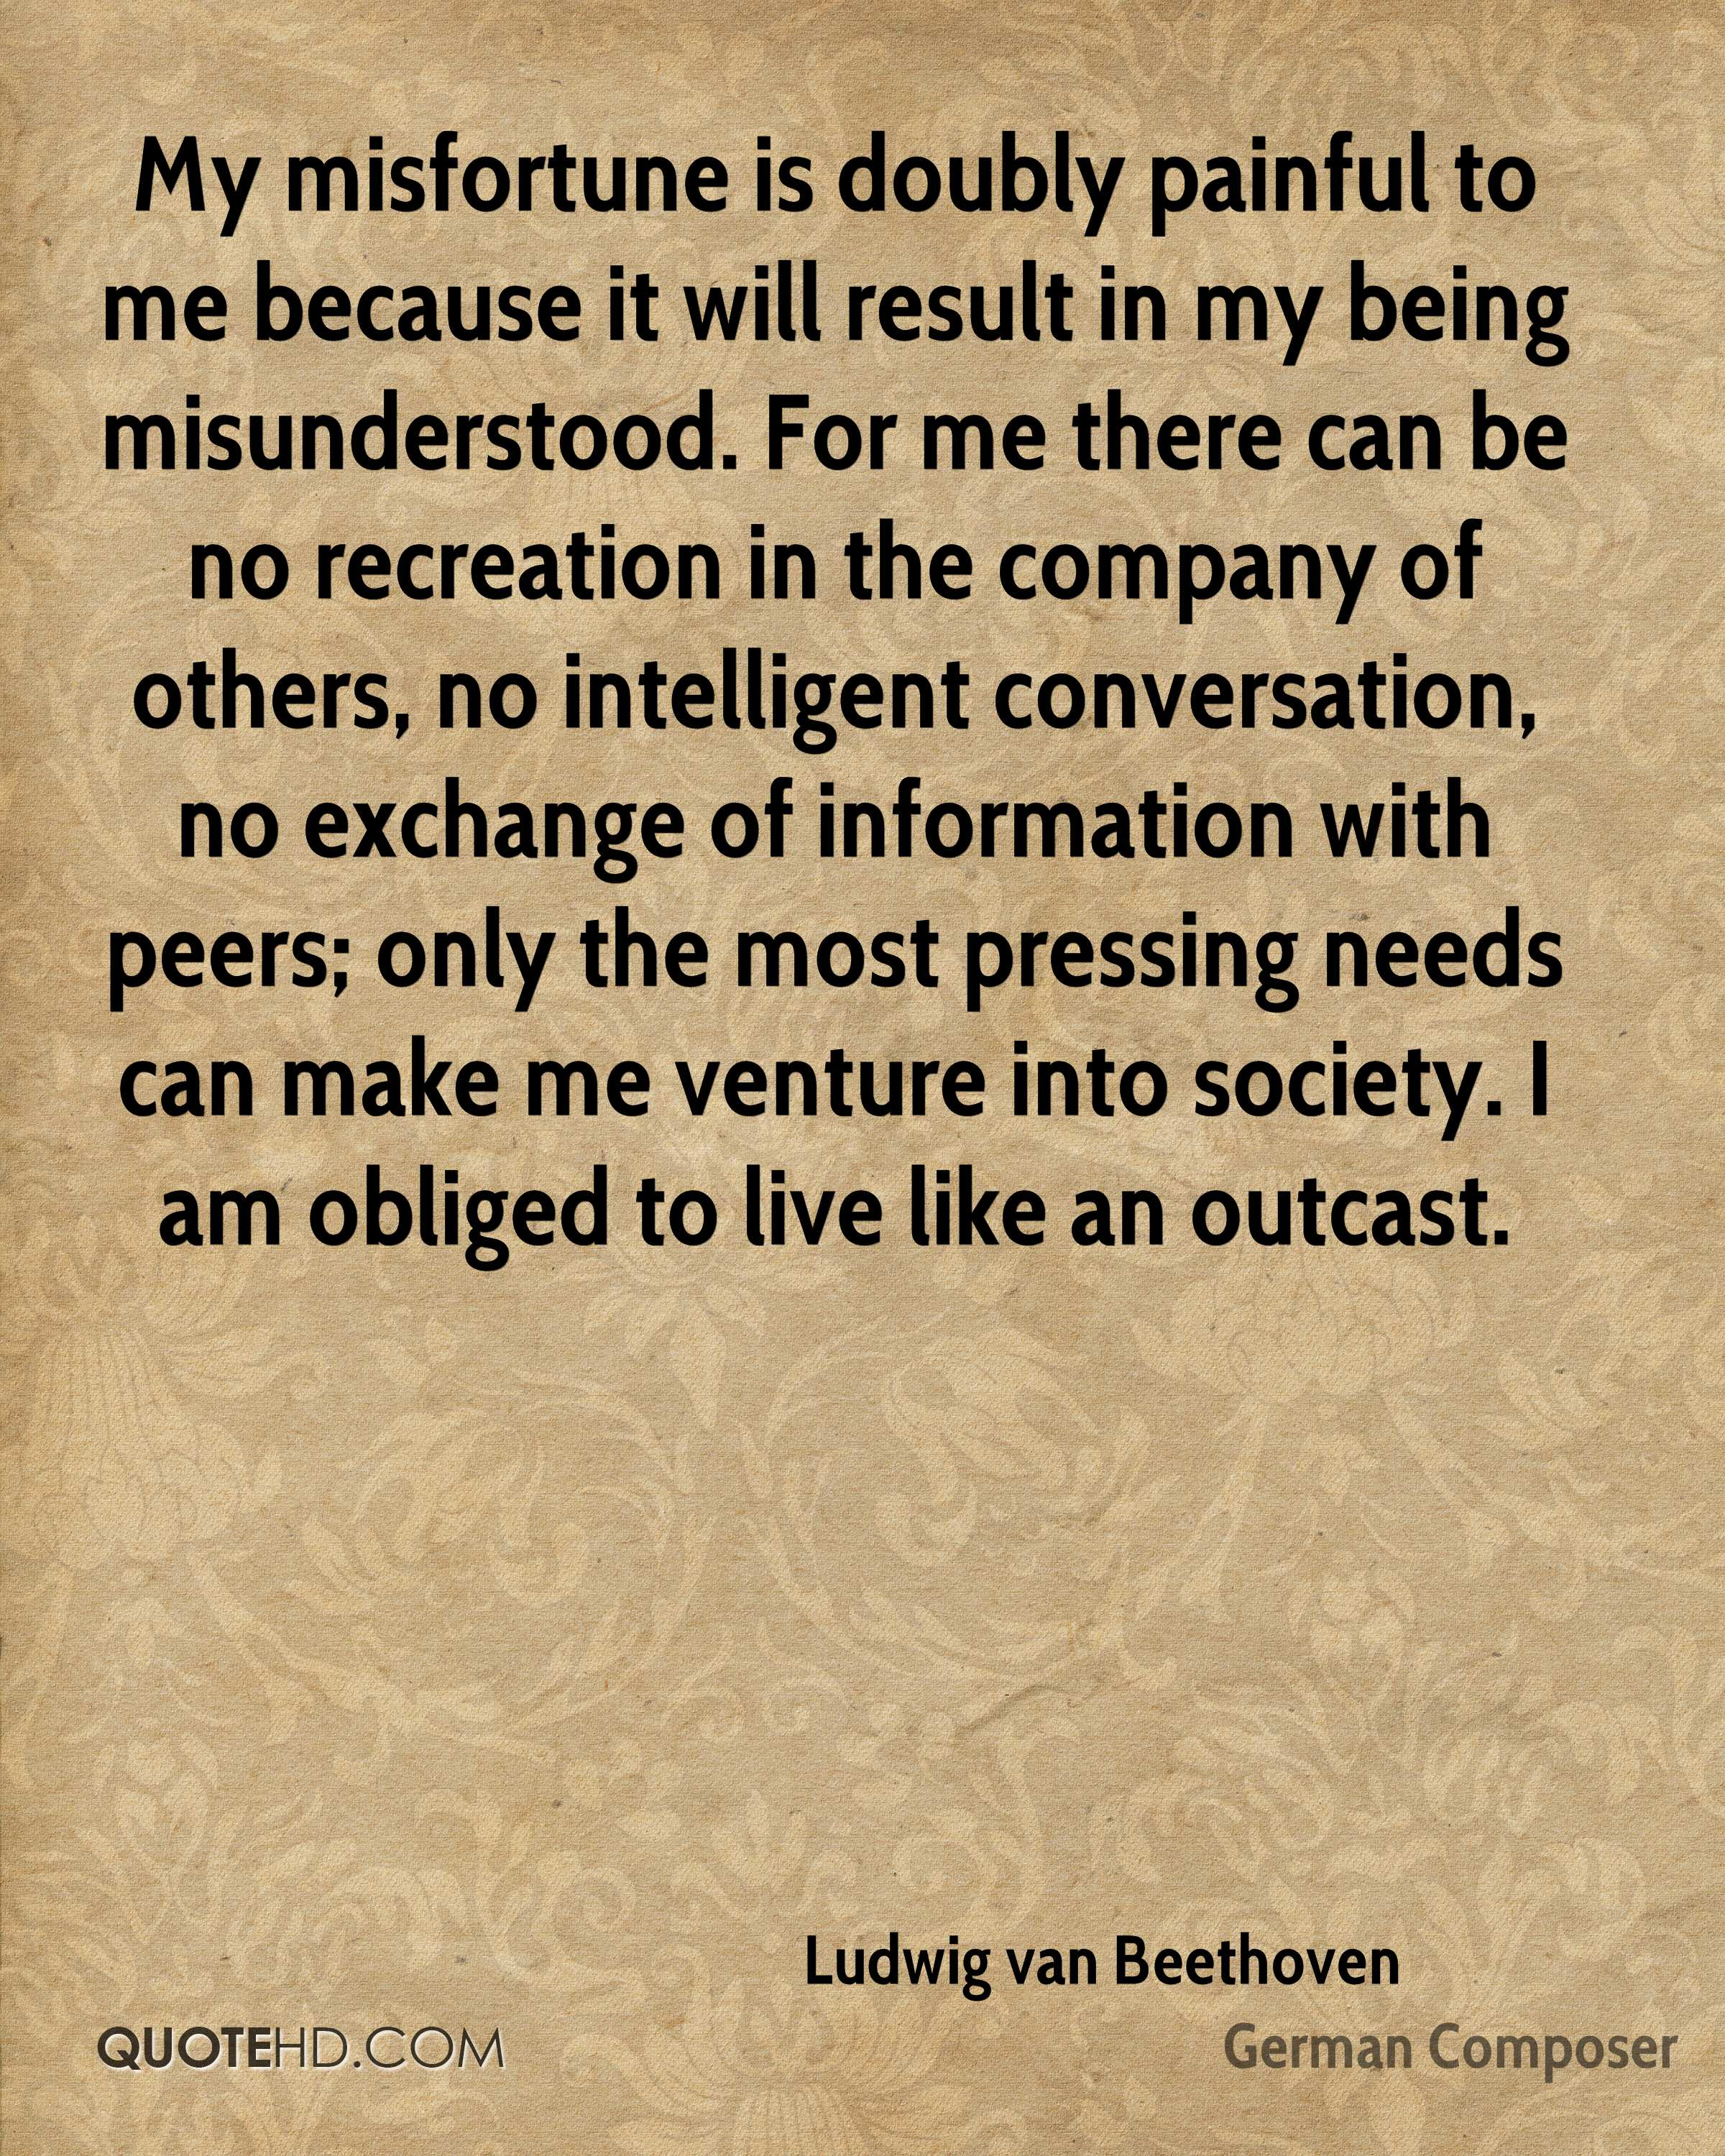 My misfortune is doubly painful to me because it will result in my being misunderstood. For me there can be no recreation in the company of others, no intelligent conversation, no exchange of information with peers; only the most pressing needs can make me venture into society. I am obliged to live like an outcast.